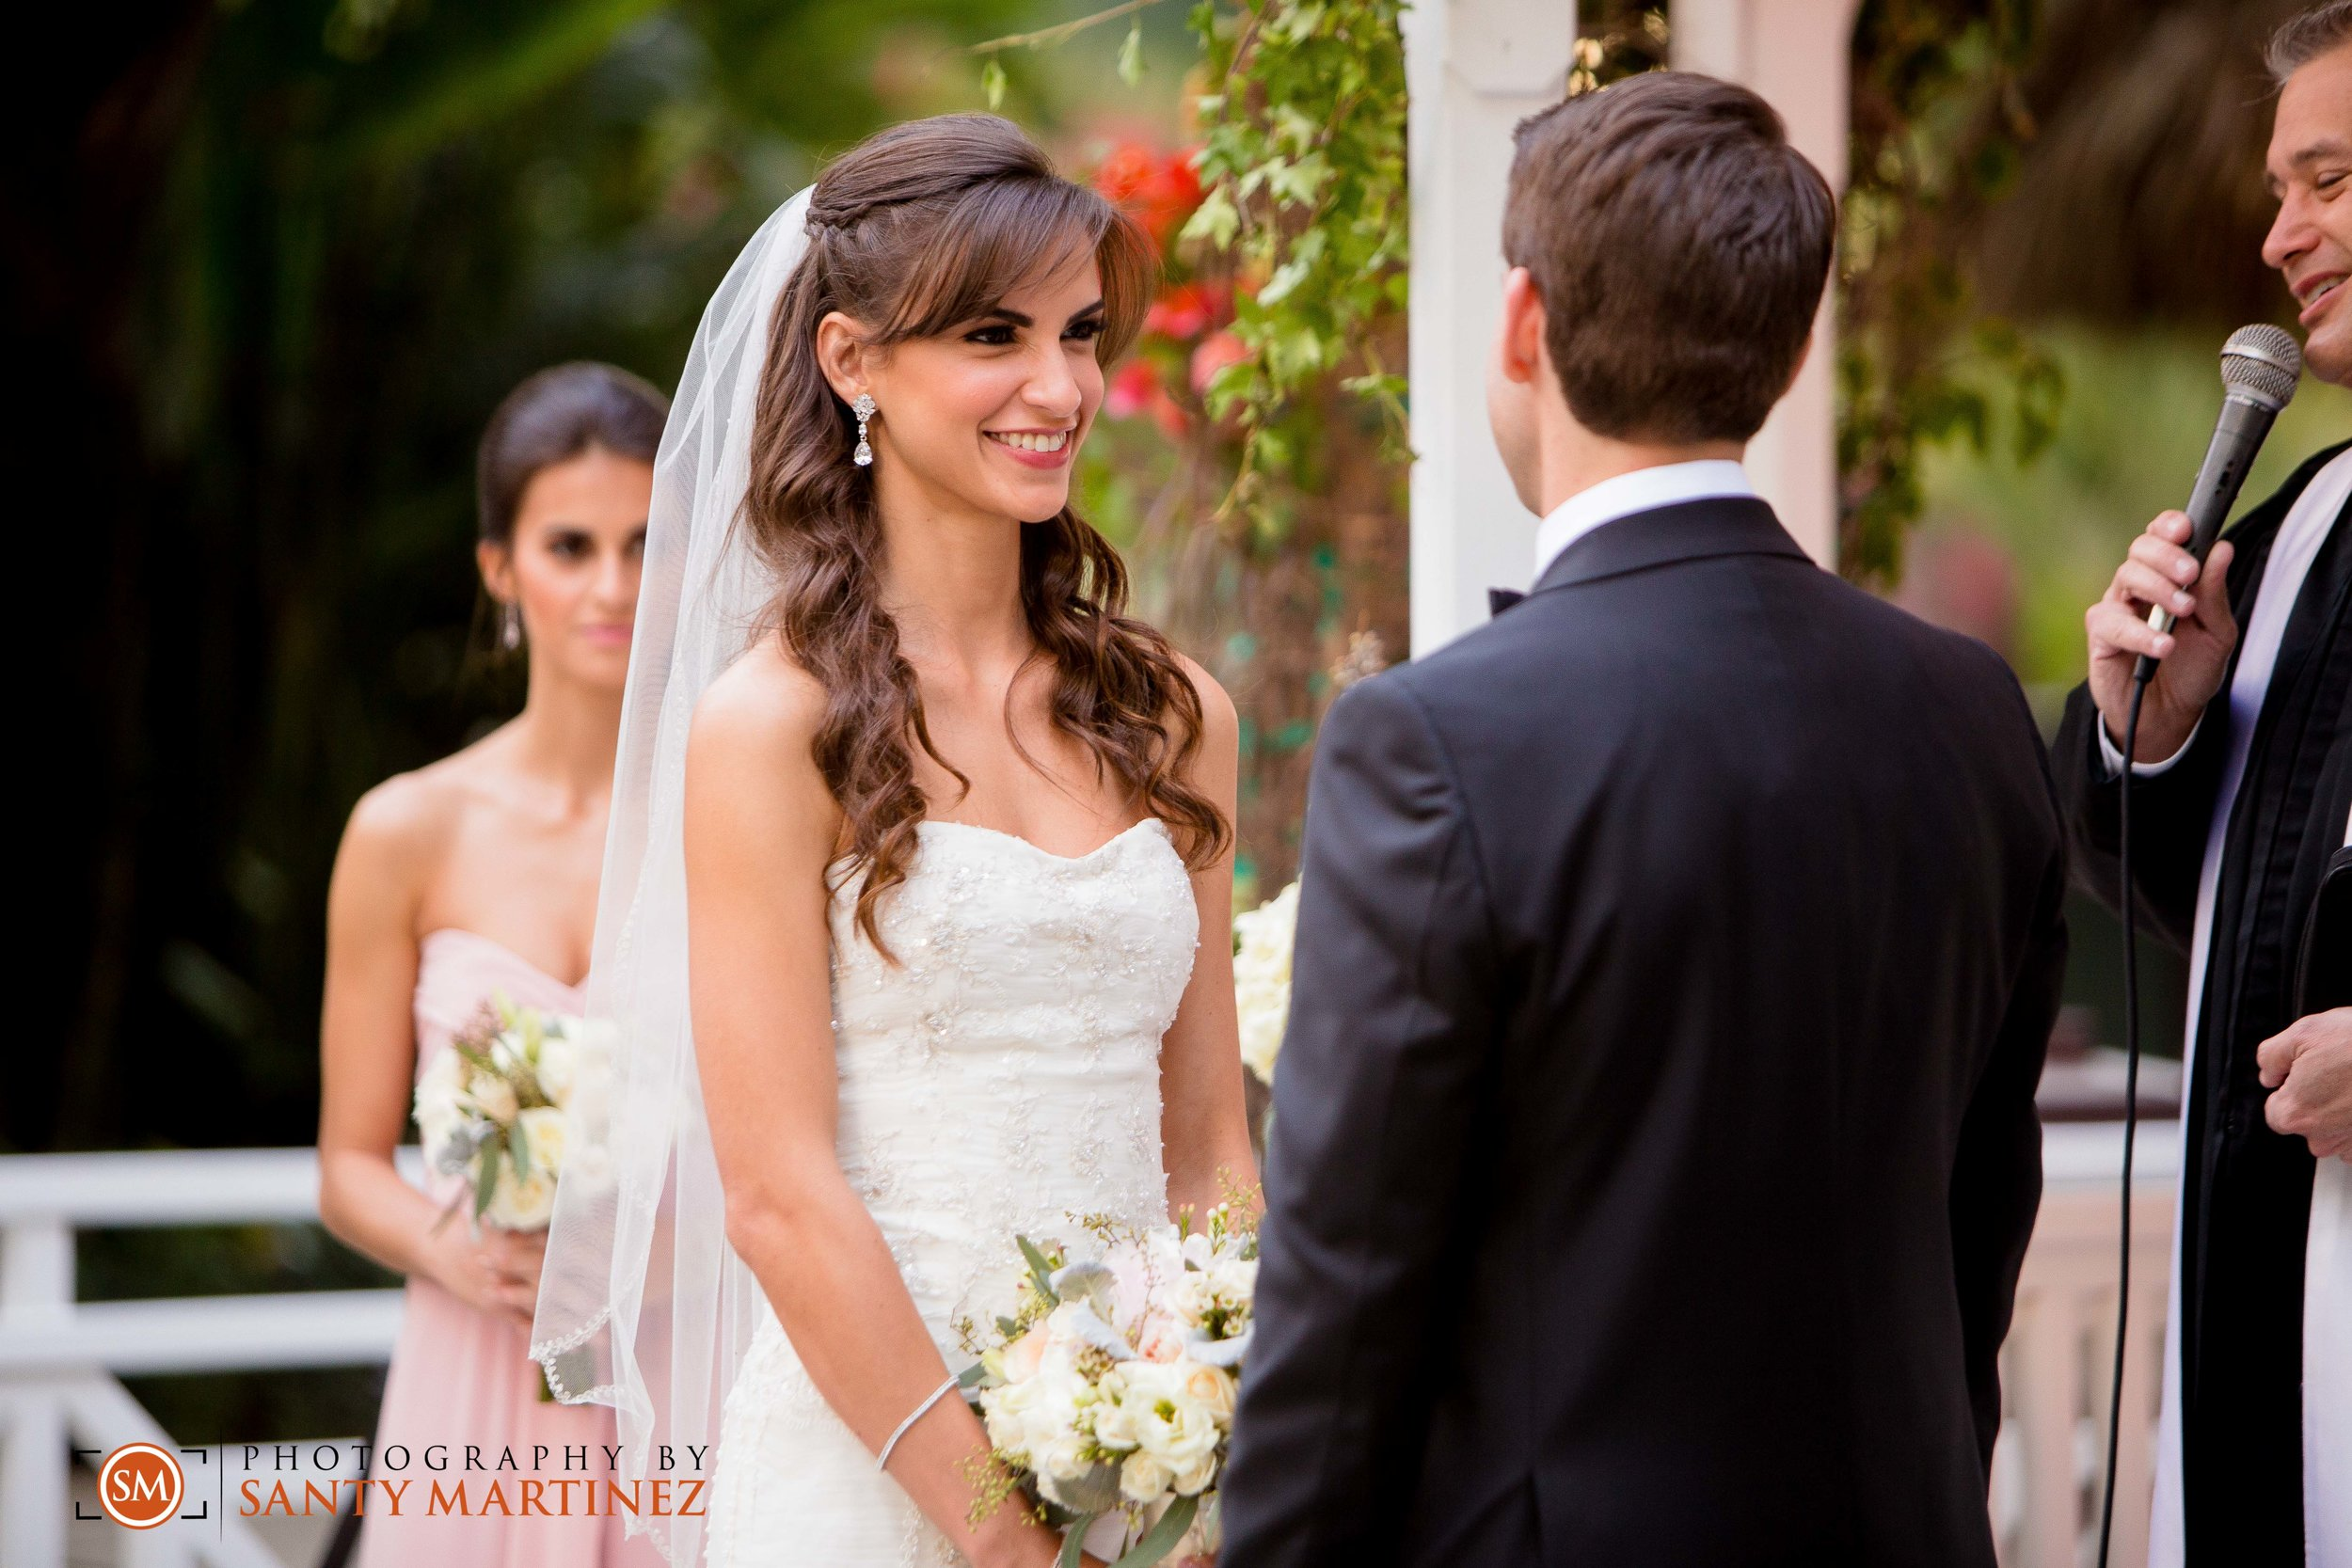 Miami Wedding Photographer - Santy Martinez -25.jpg